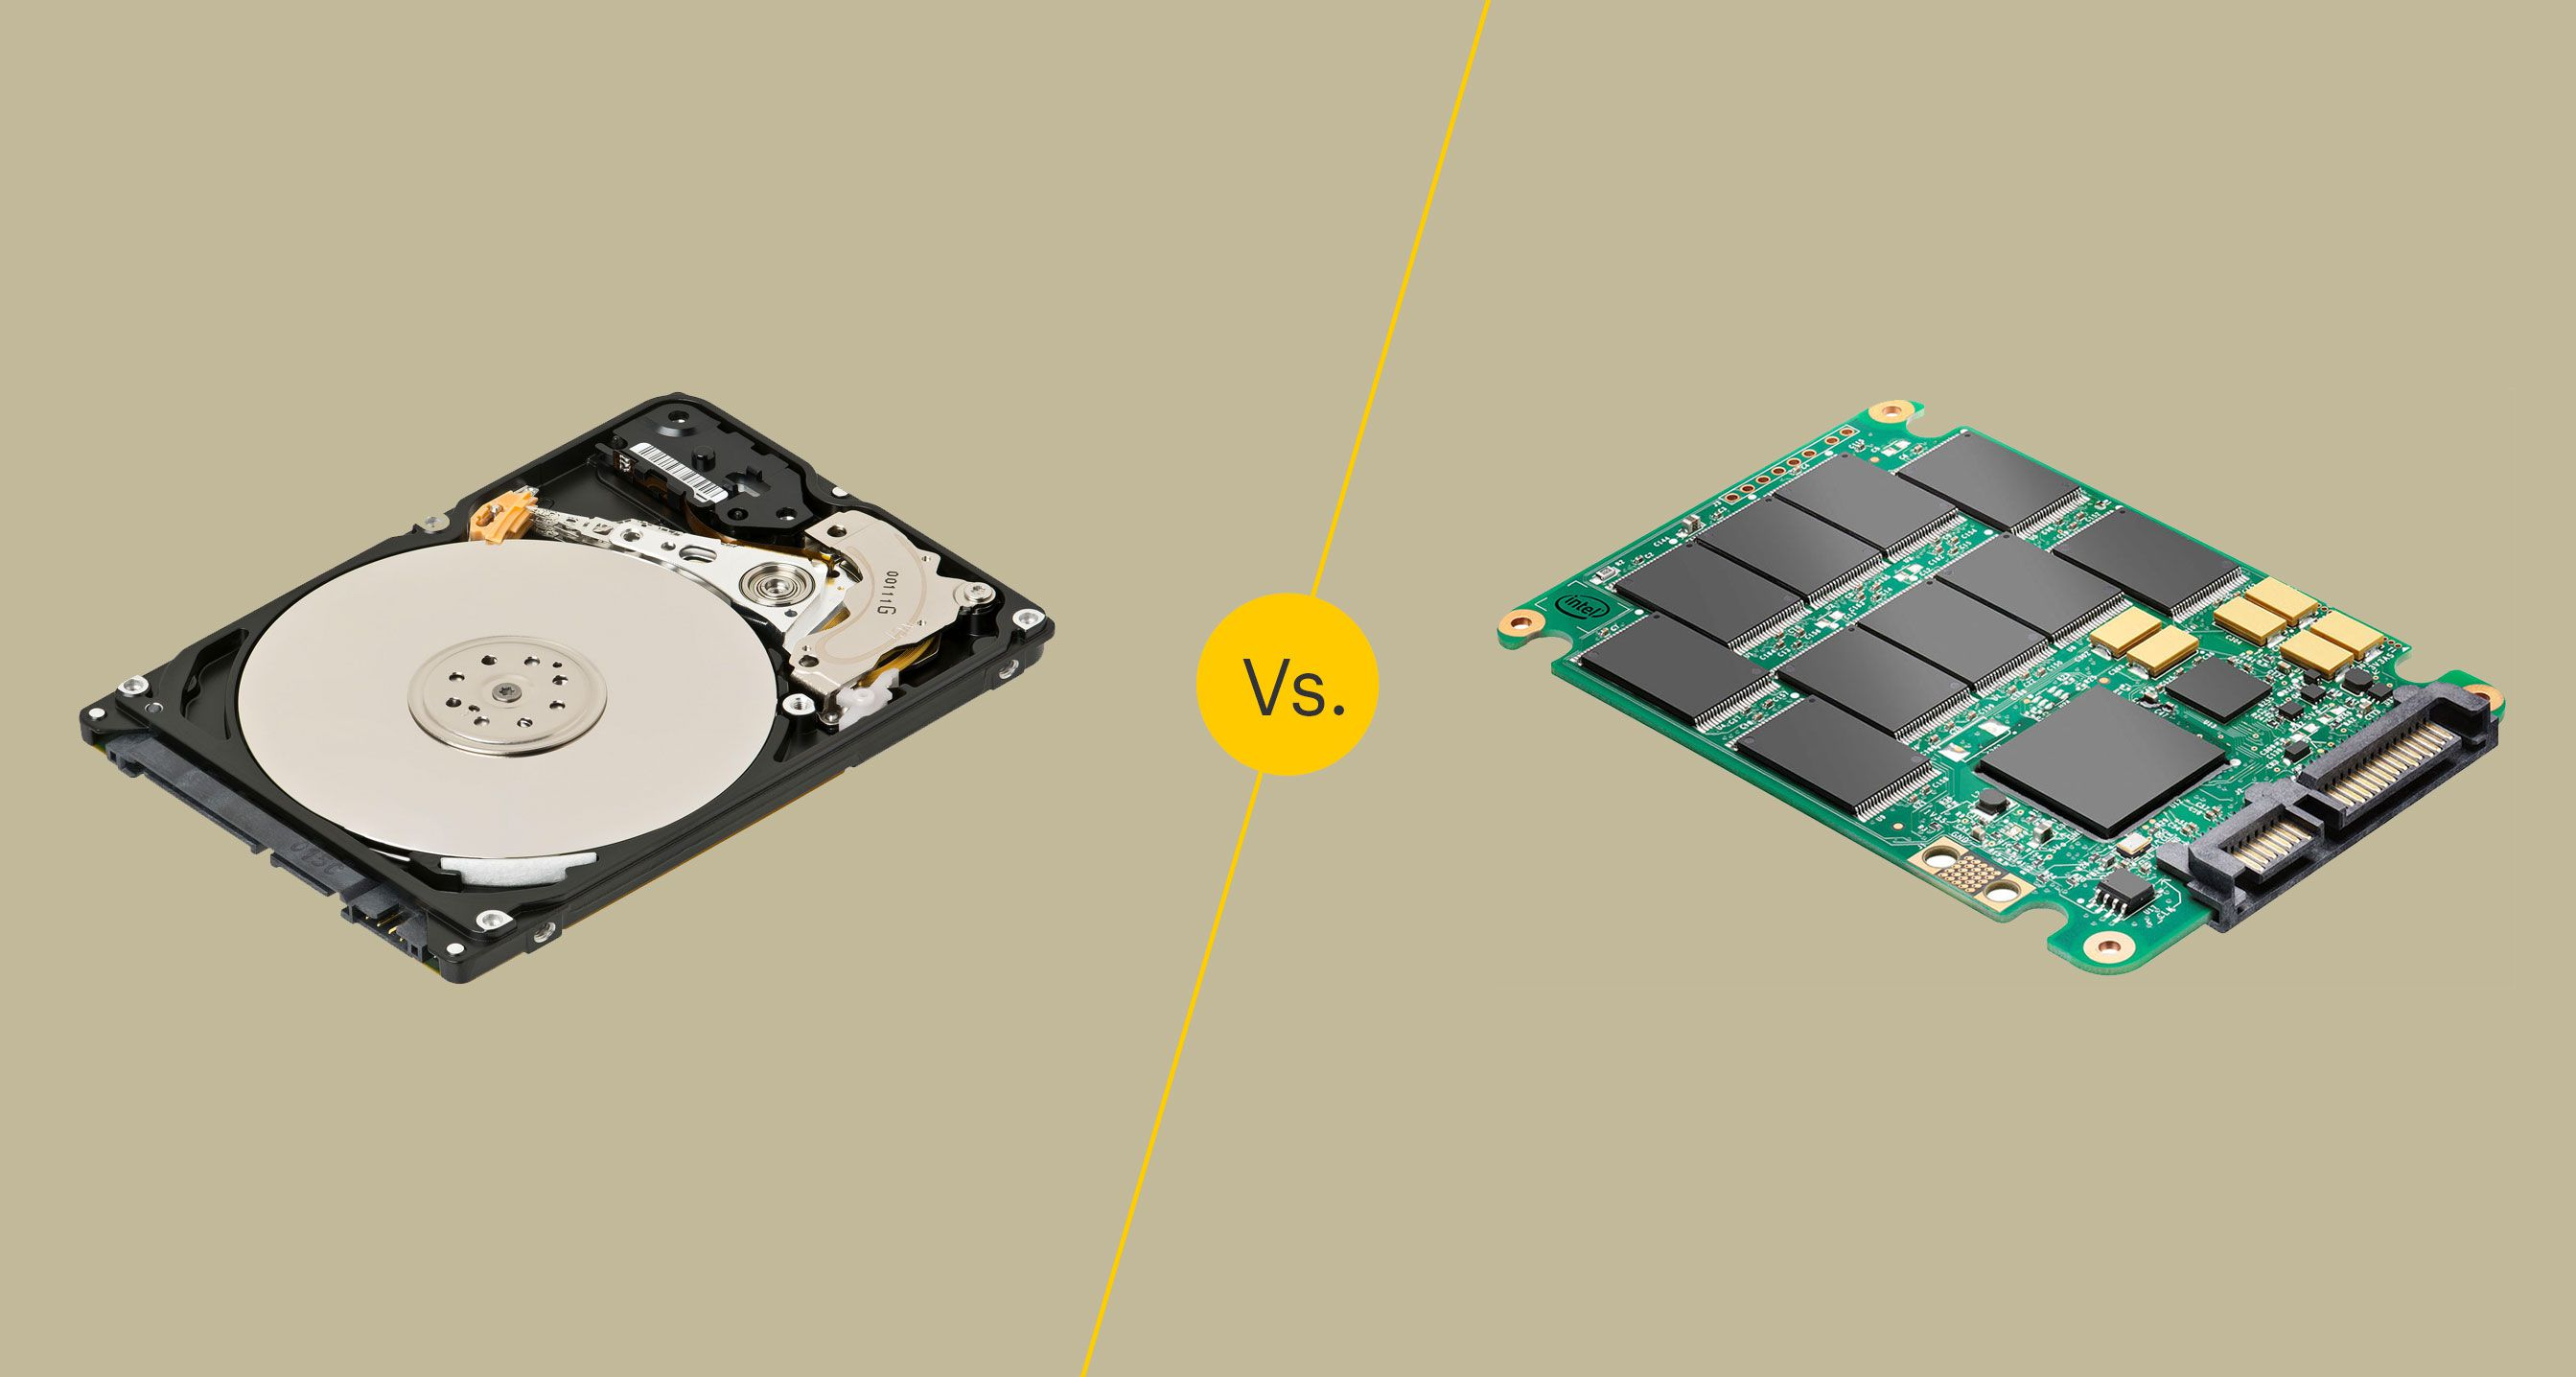 HDD vs SSD Storage: Which Type is Better?